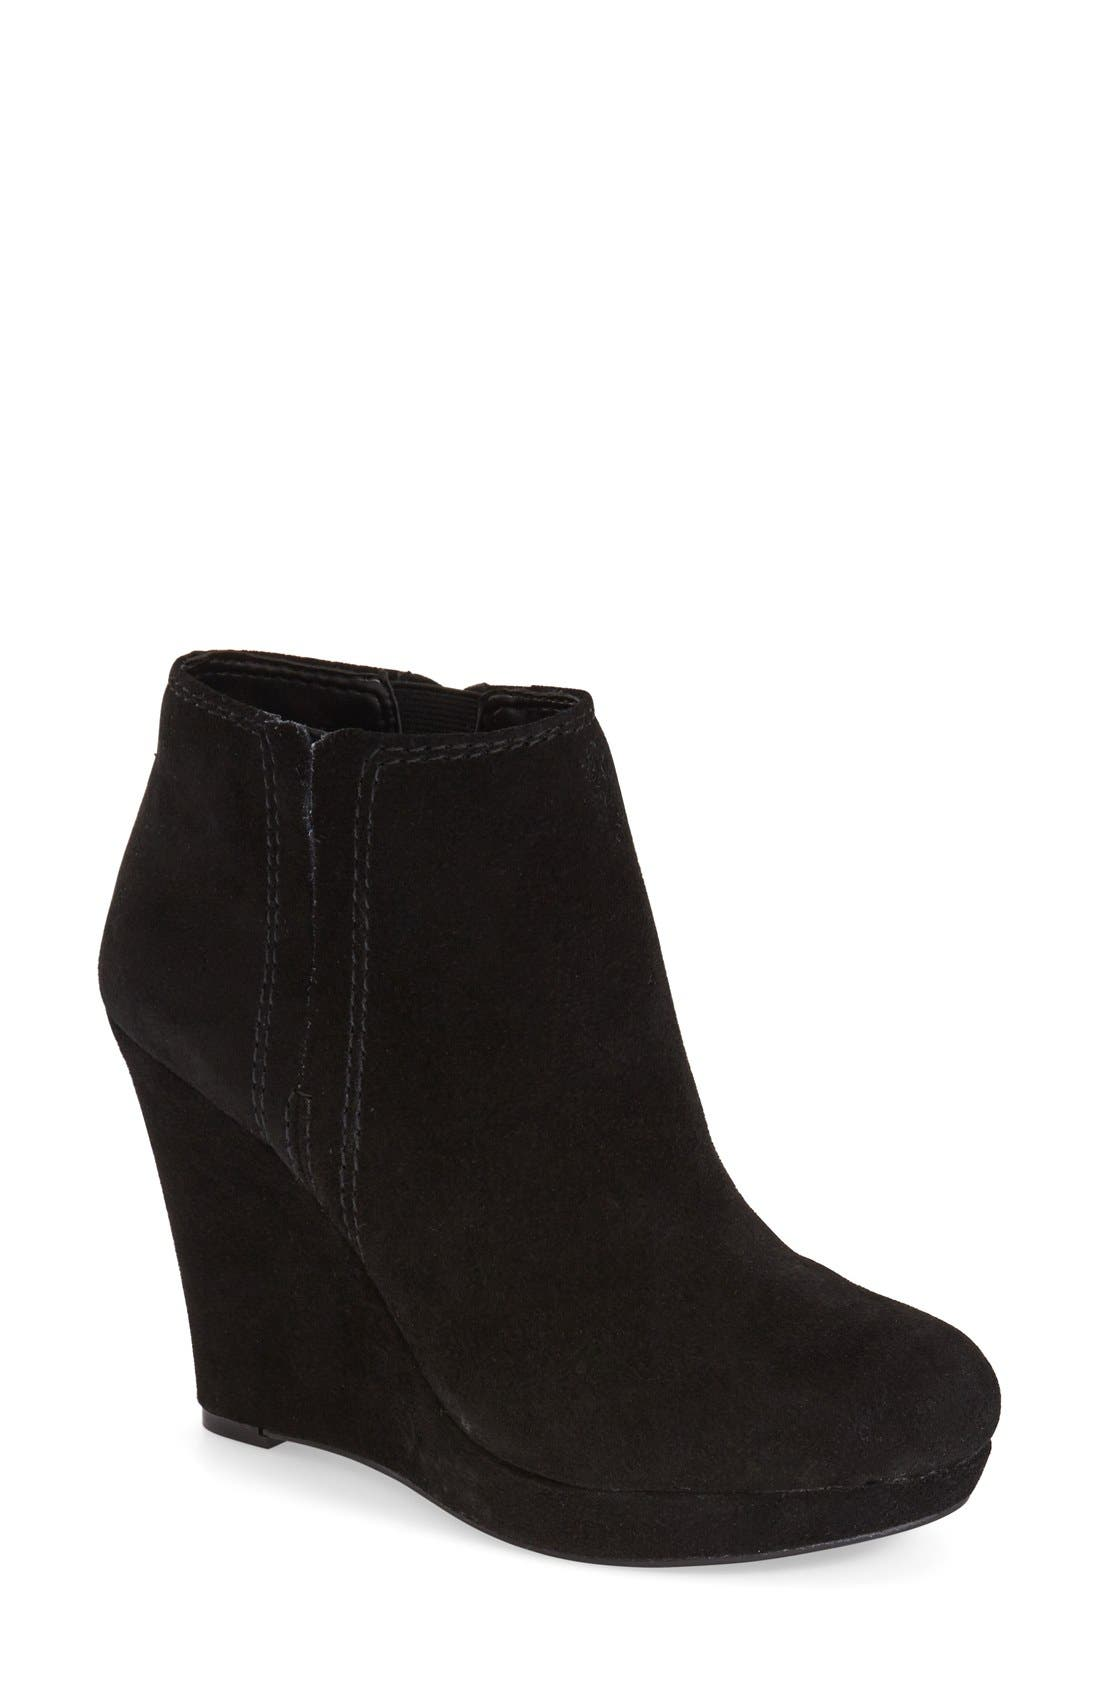 'Calwell' Wedge Bootie,                         Main,                         color, 001